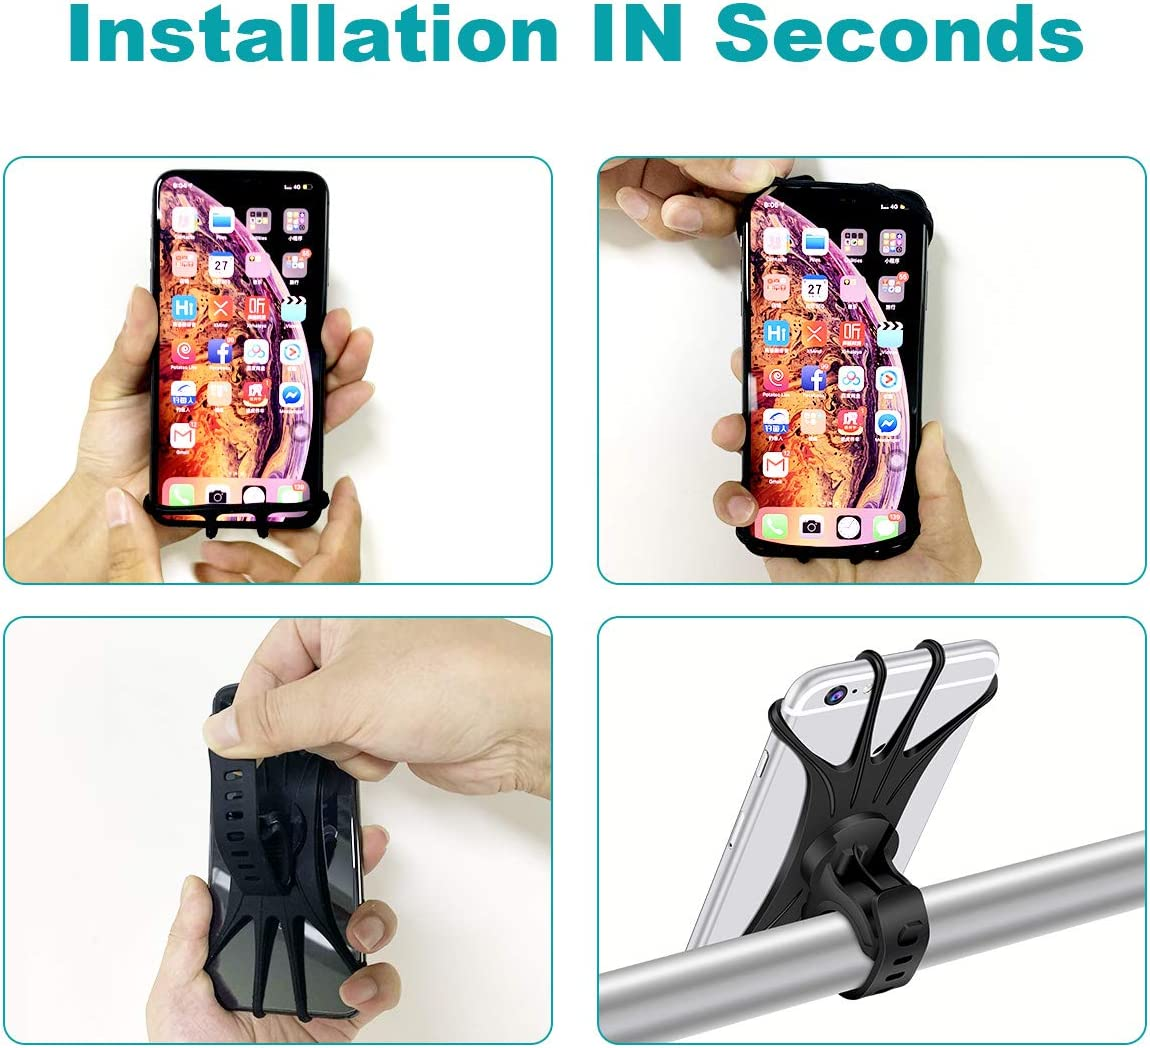 LG 4.0-6.5 Phones Universal Bike Phone Mount Detachable 360/° Rotation Motorcycle Bicycle Holder for iPhone Xs MAX//XR//X//8//8P//7//7P//6//6P,Galaxy S7//S8//S9//S10,Google Pixel Nexus,Nokia HTC